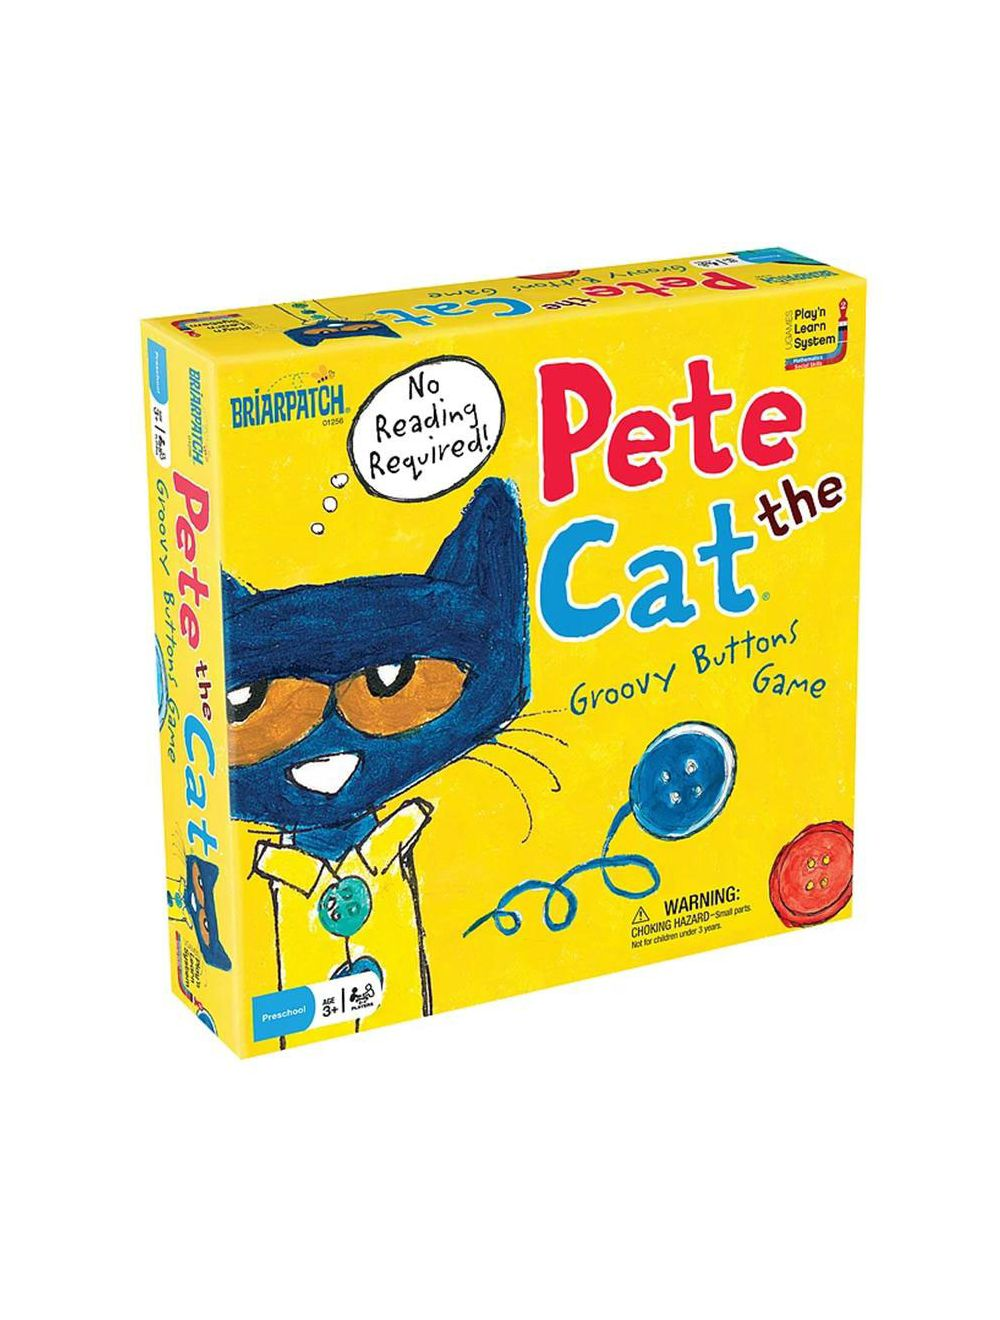 Pete The Cat I Love My White Shoes Game